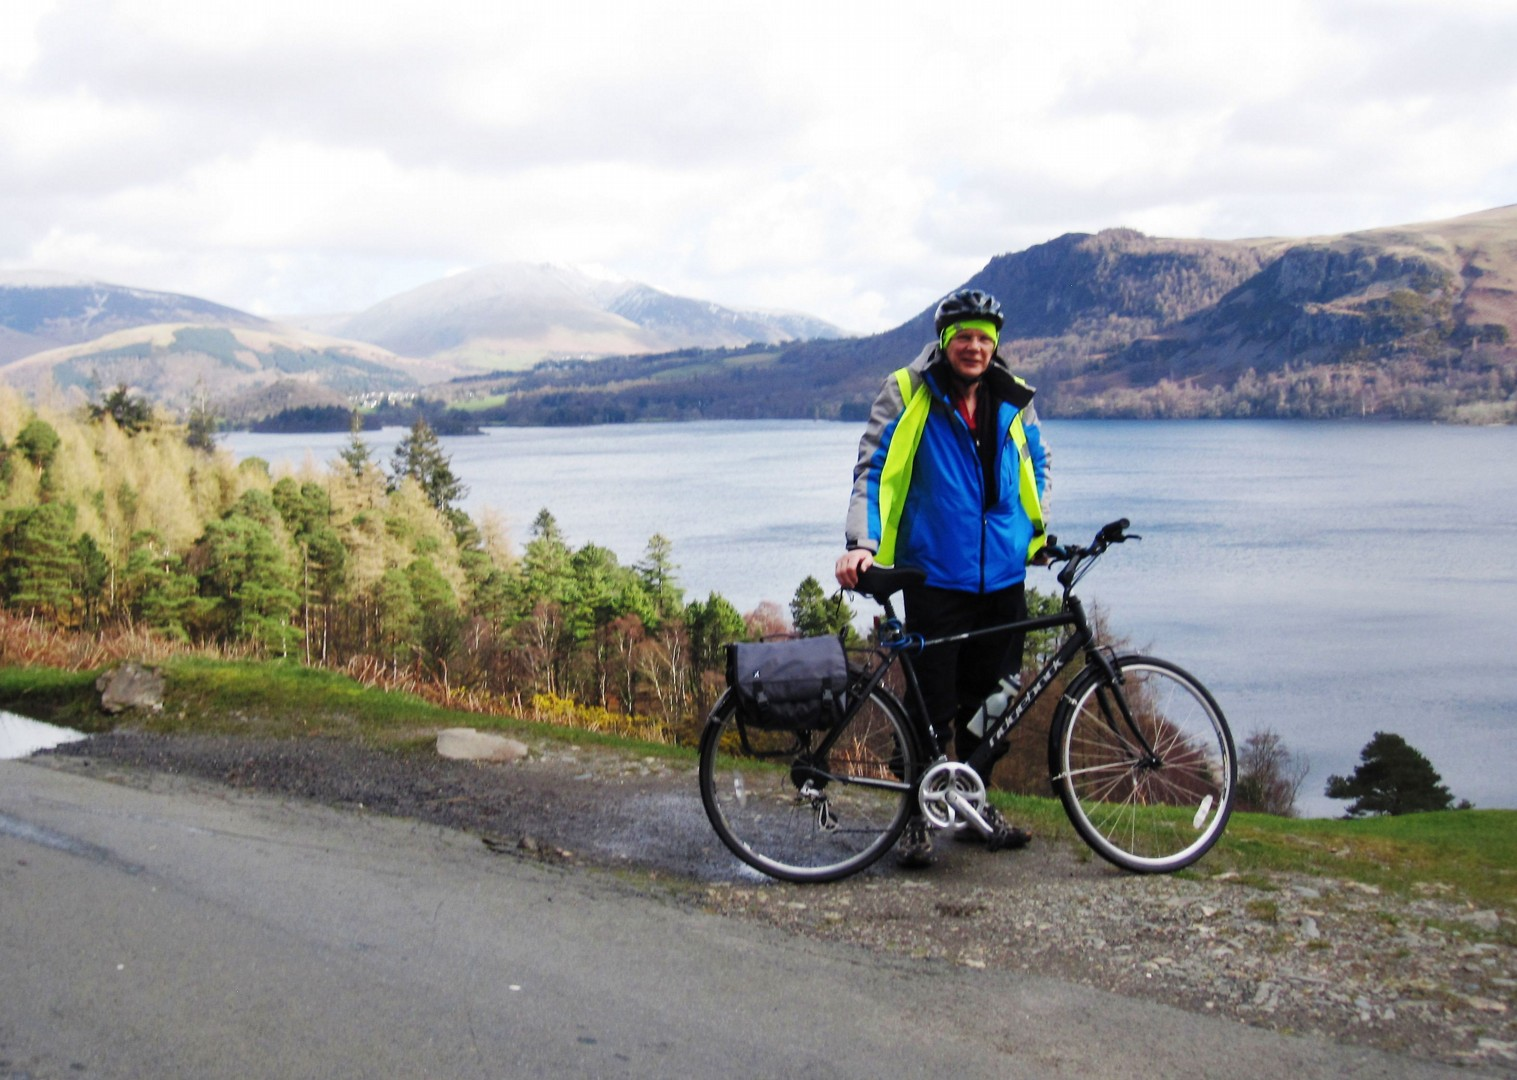 IMG_4659a.JPG - UK - Lake District - Derwent Water - Self-Guided Leisure Cycling Holiday - Leisure Cycling